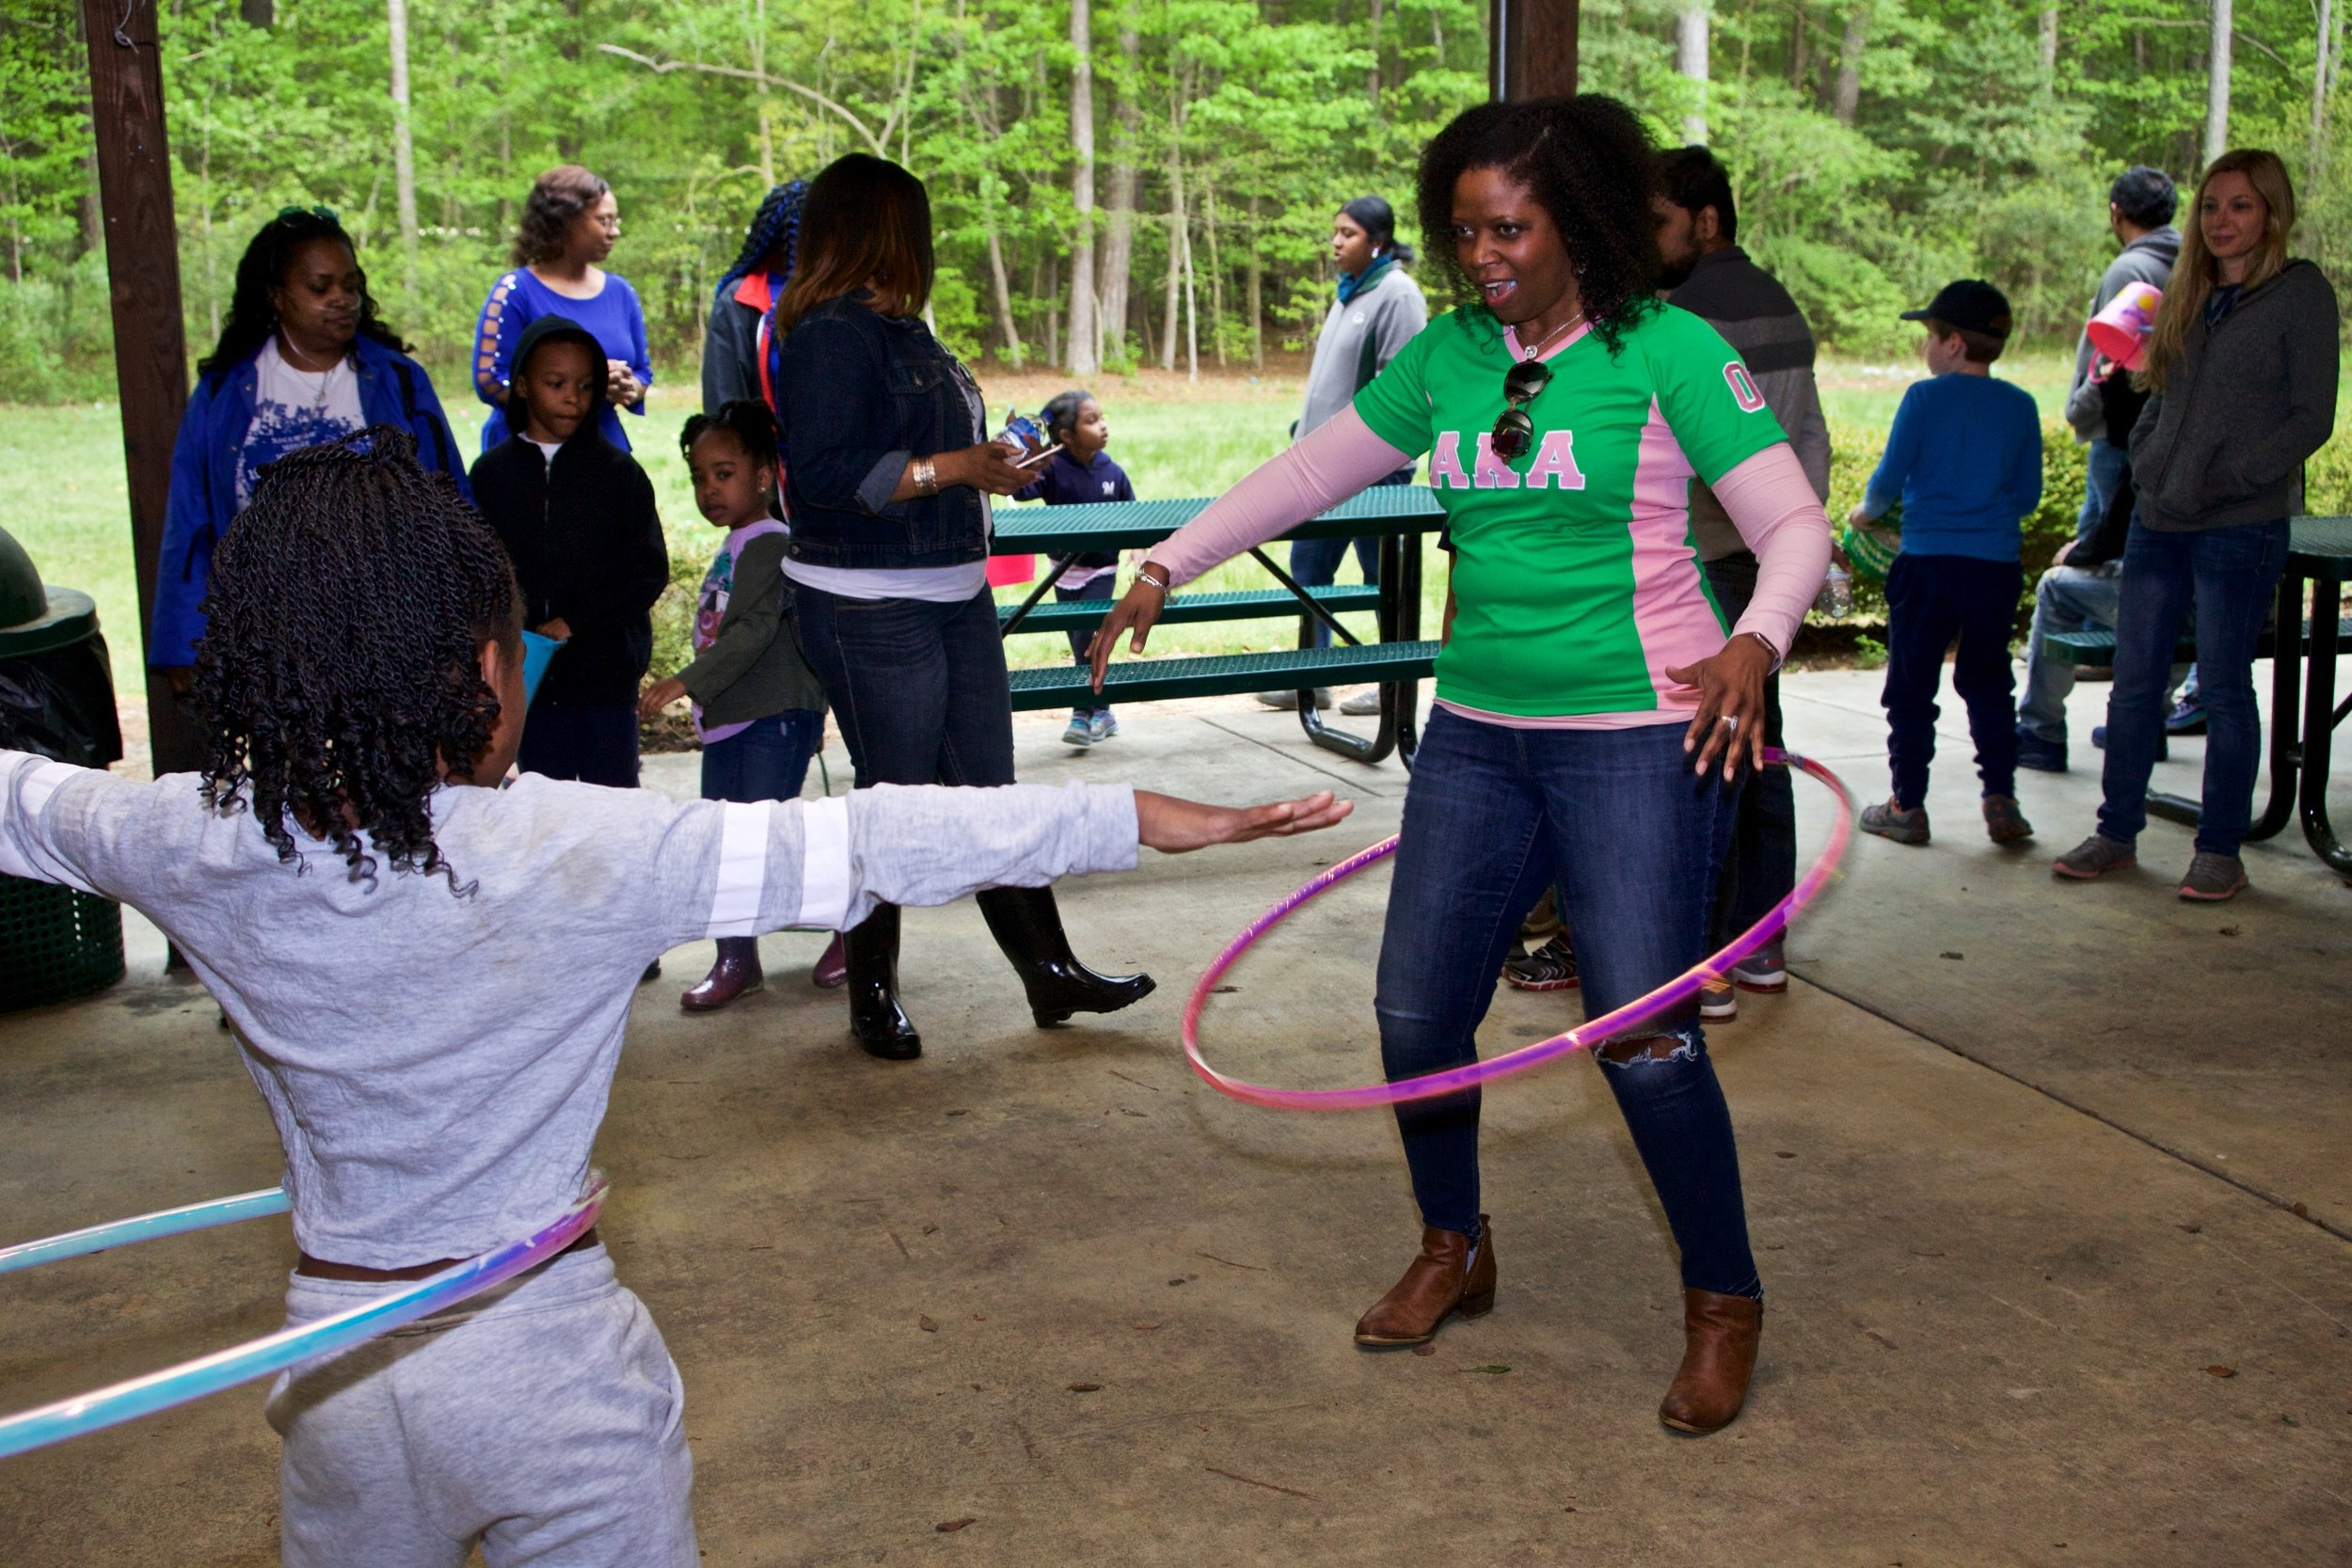 2019.4.20 Raleigh NPHC Easter Egg Hunt by StanChambersJr Photography 10.jpg